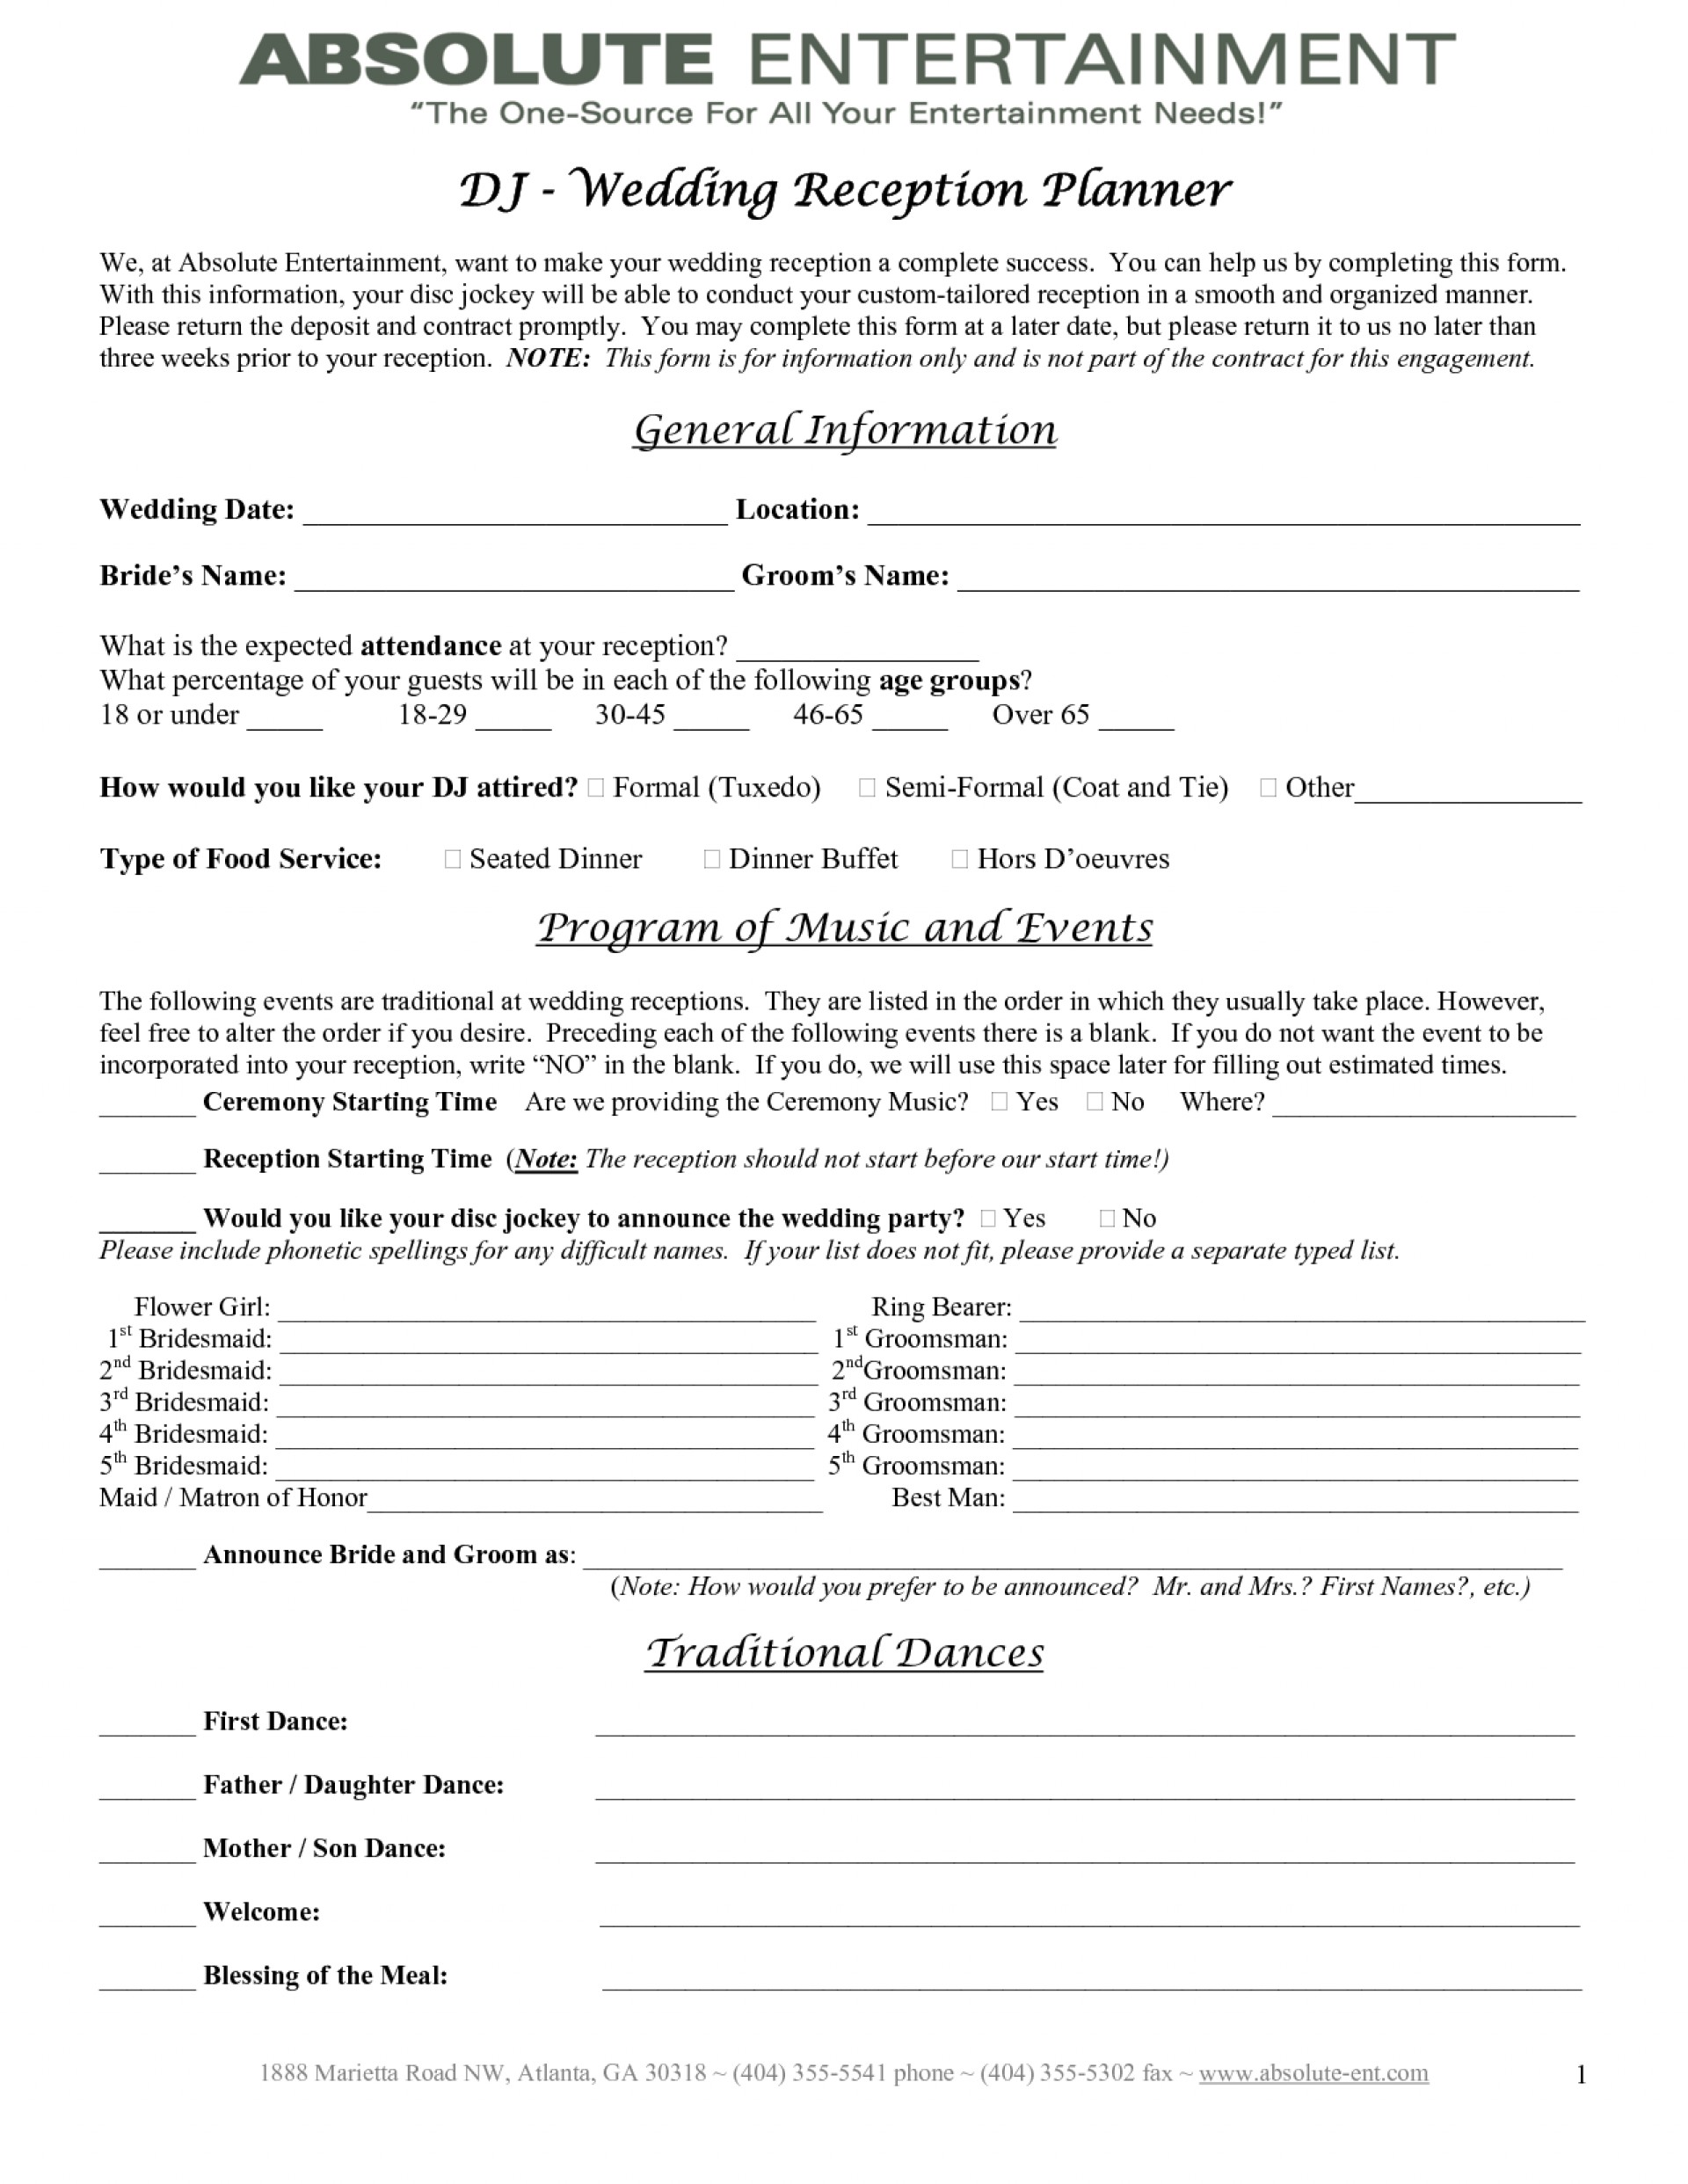 Wedding Reception Contract Template